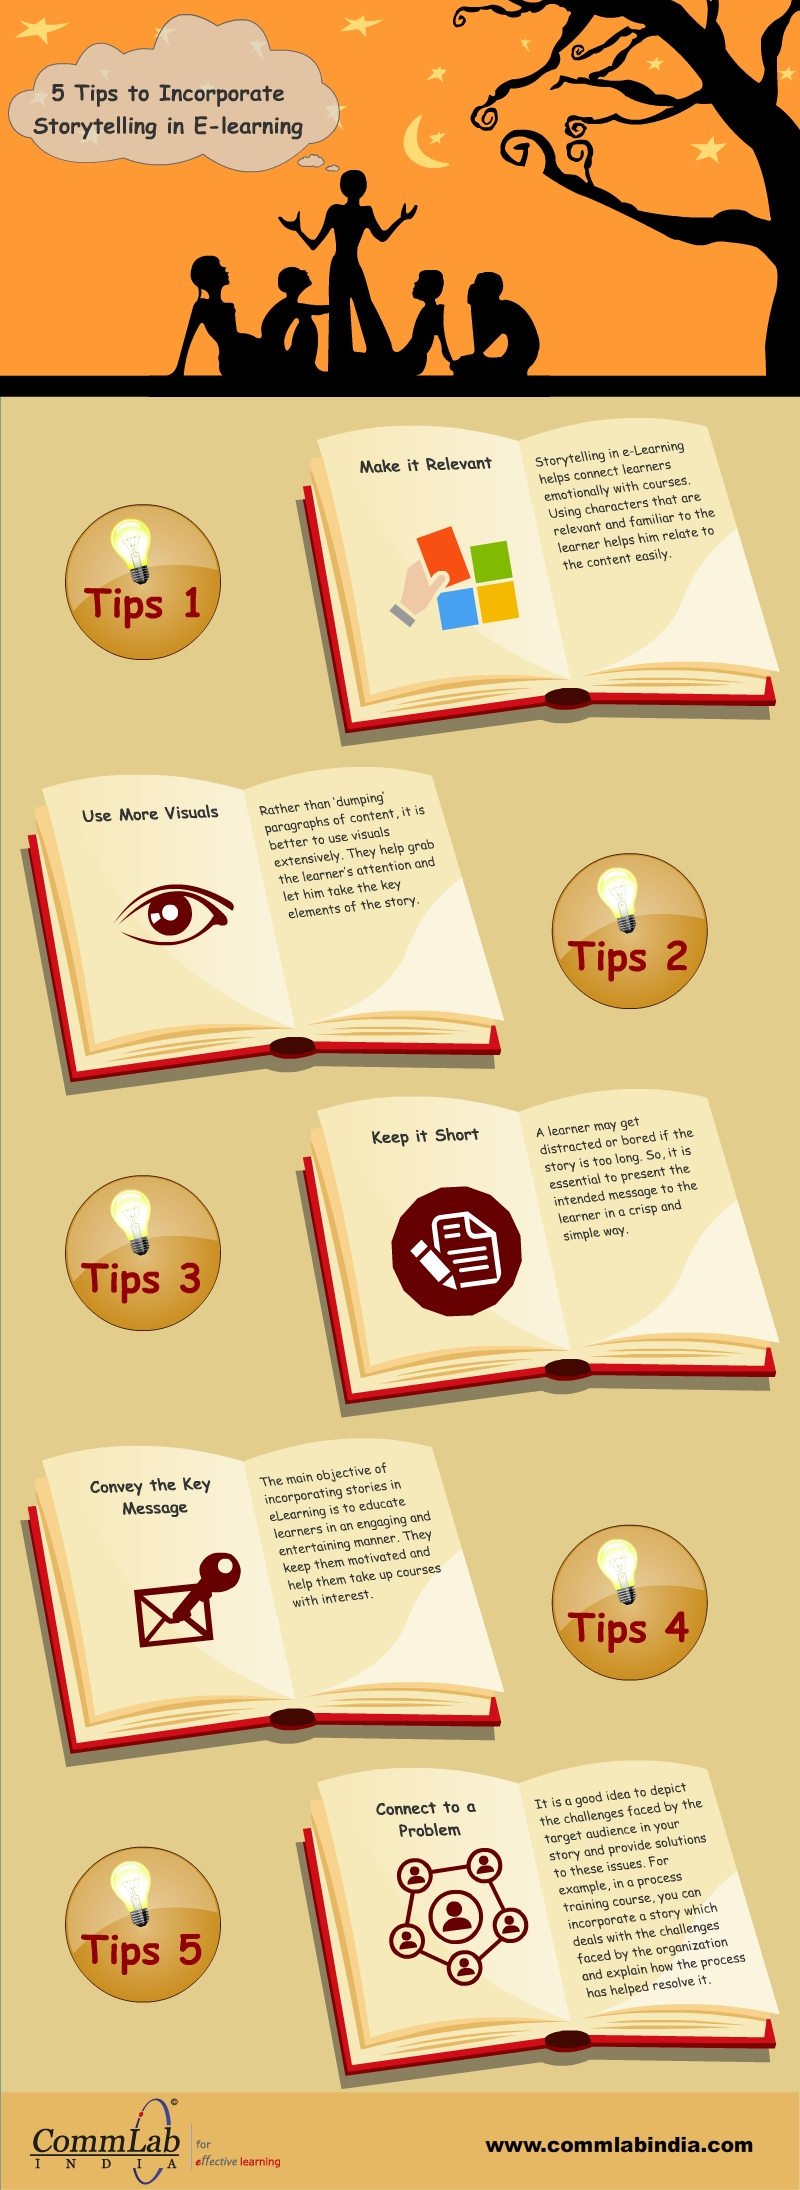 5 Tips to Incorporate Story Telling in E-Learning [Infographic]